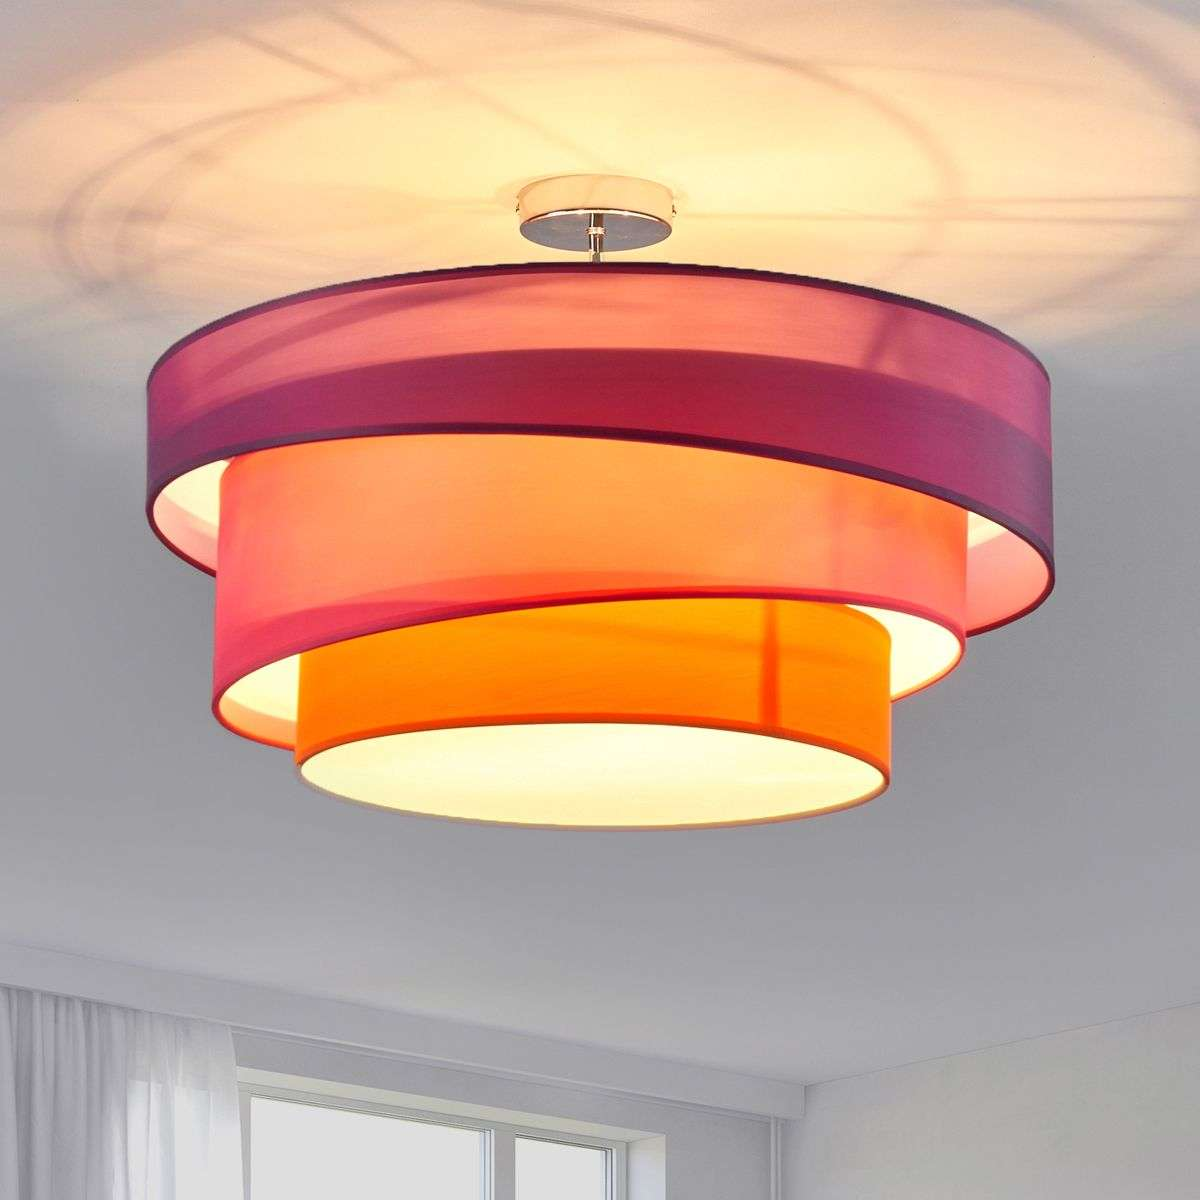 Three coloured ceiling light melia violet pink lights three coloured ceiling light melia violet pink aloadofball Image collections